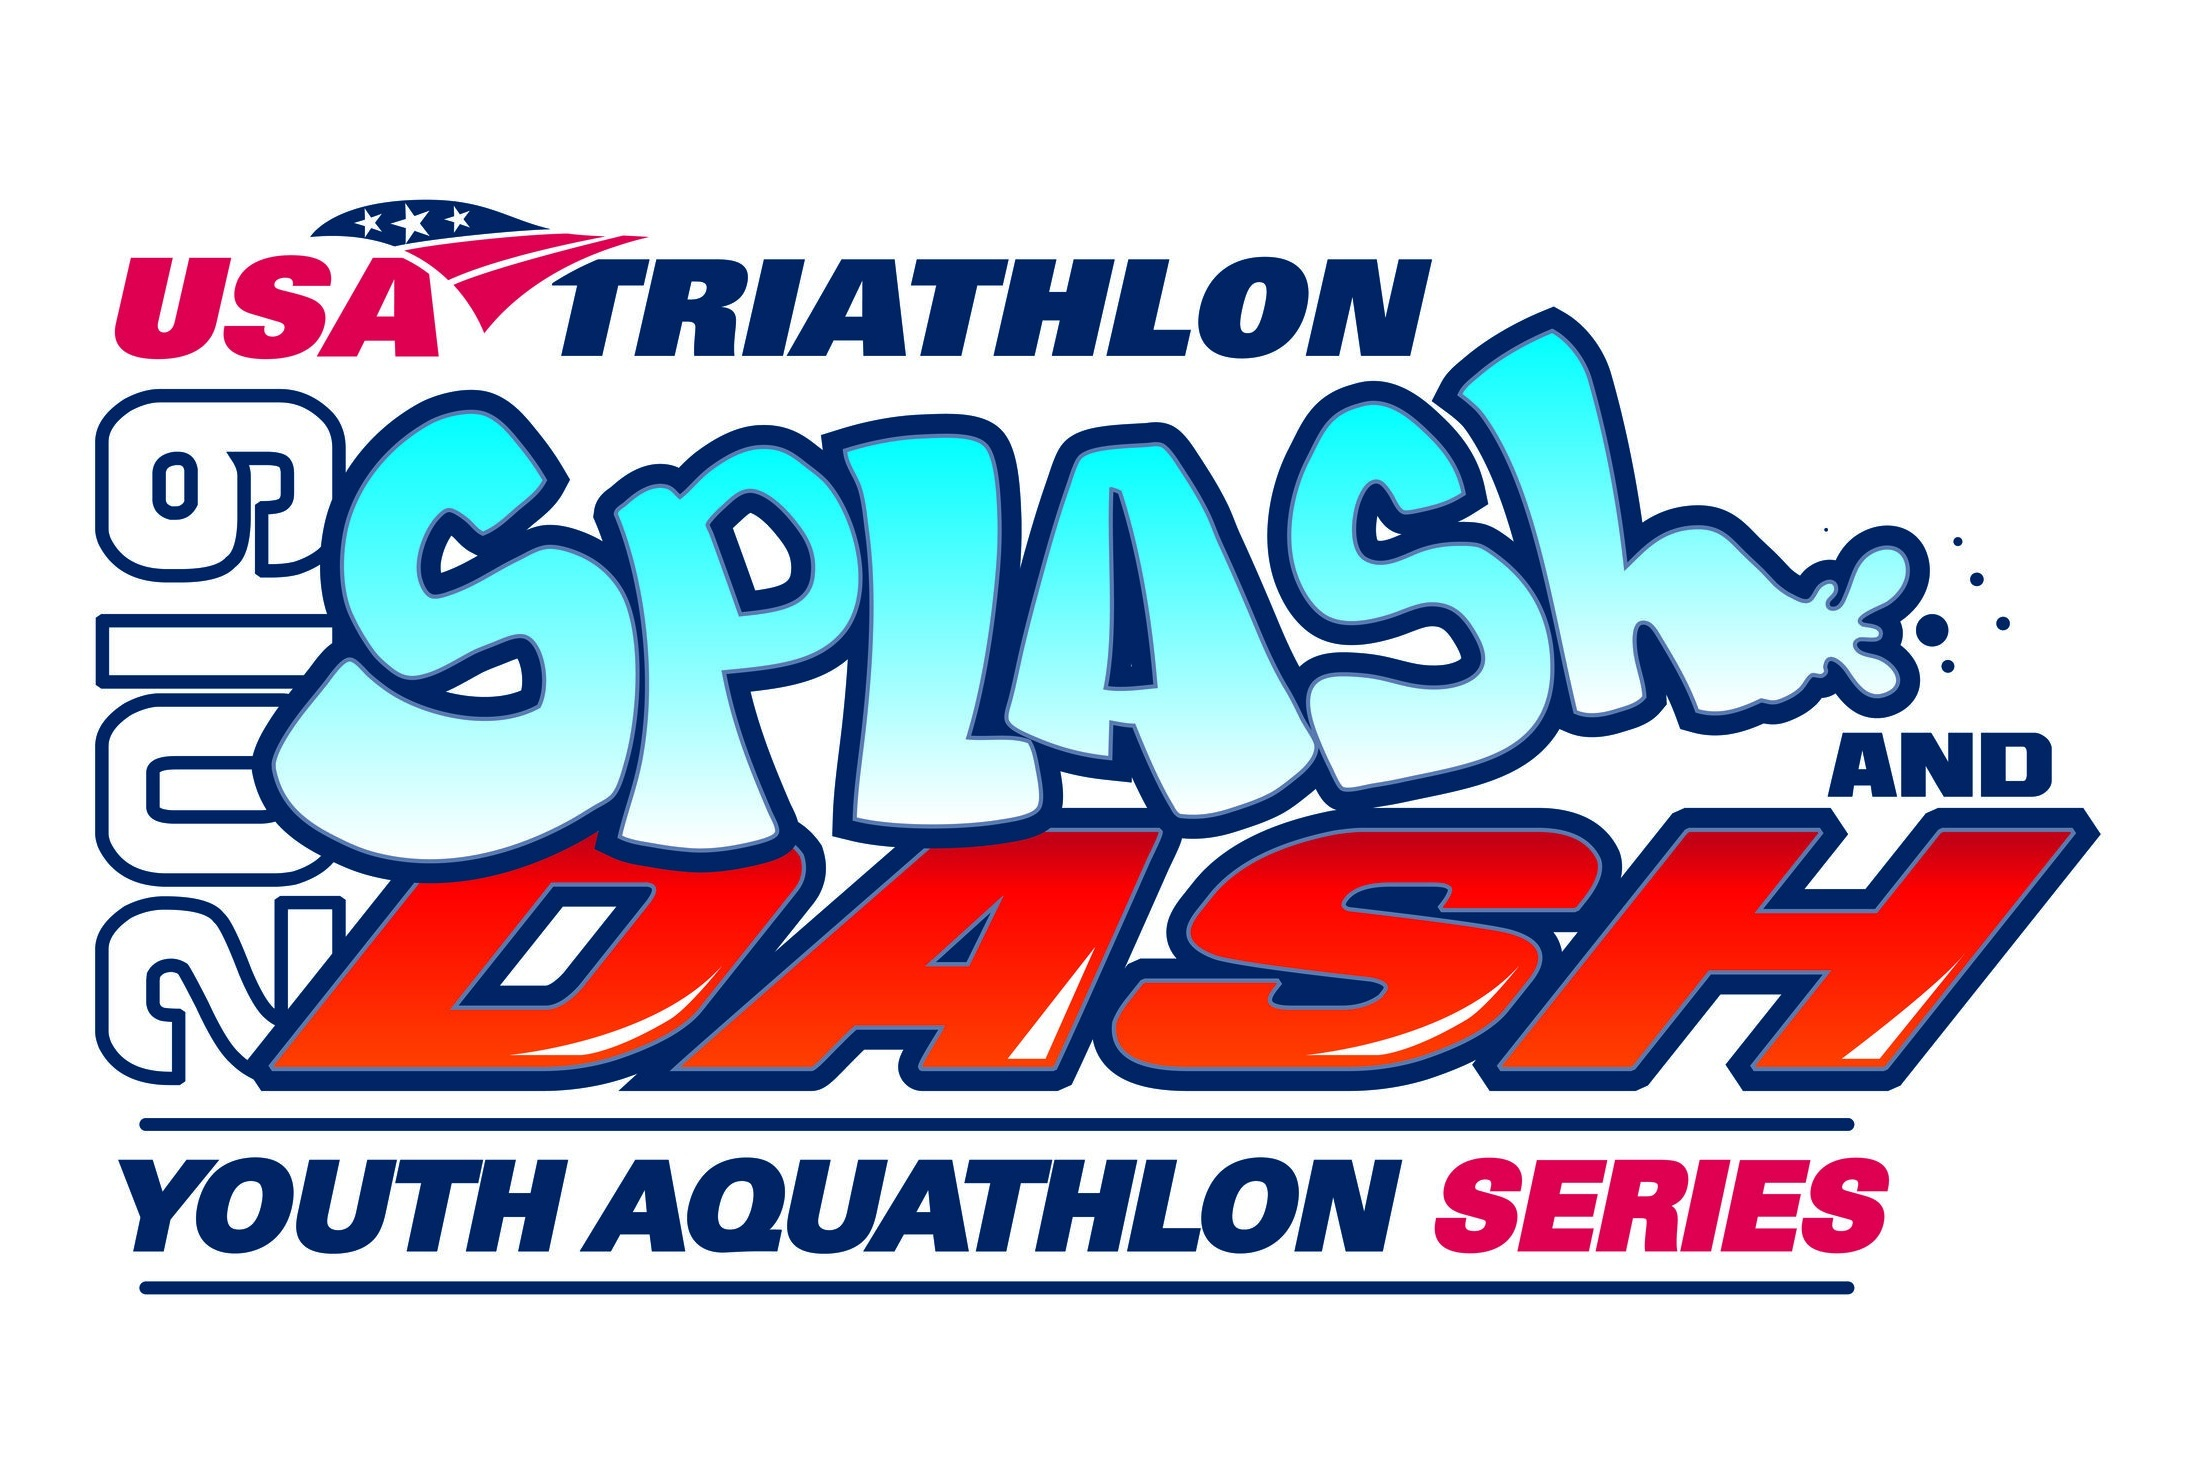 The 2019 Splash Dash 'n Smile is sanctioned by USA Triathlon and follows official aquathlon competition guidelines. A $10 USAT membership is required and can be used for any USAT event one year after purchase. USAT website and information  here .